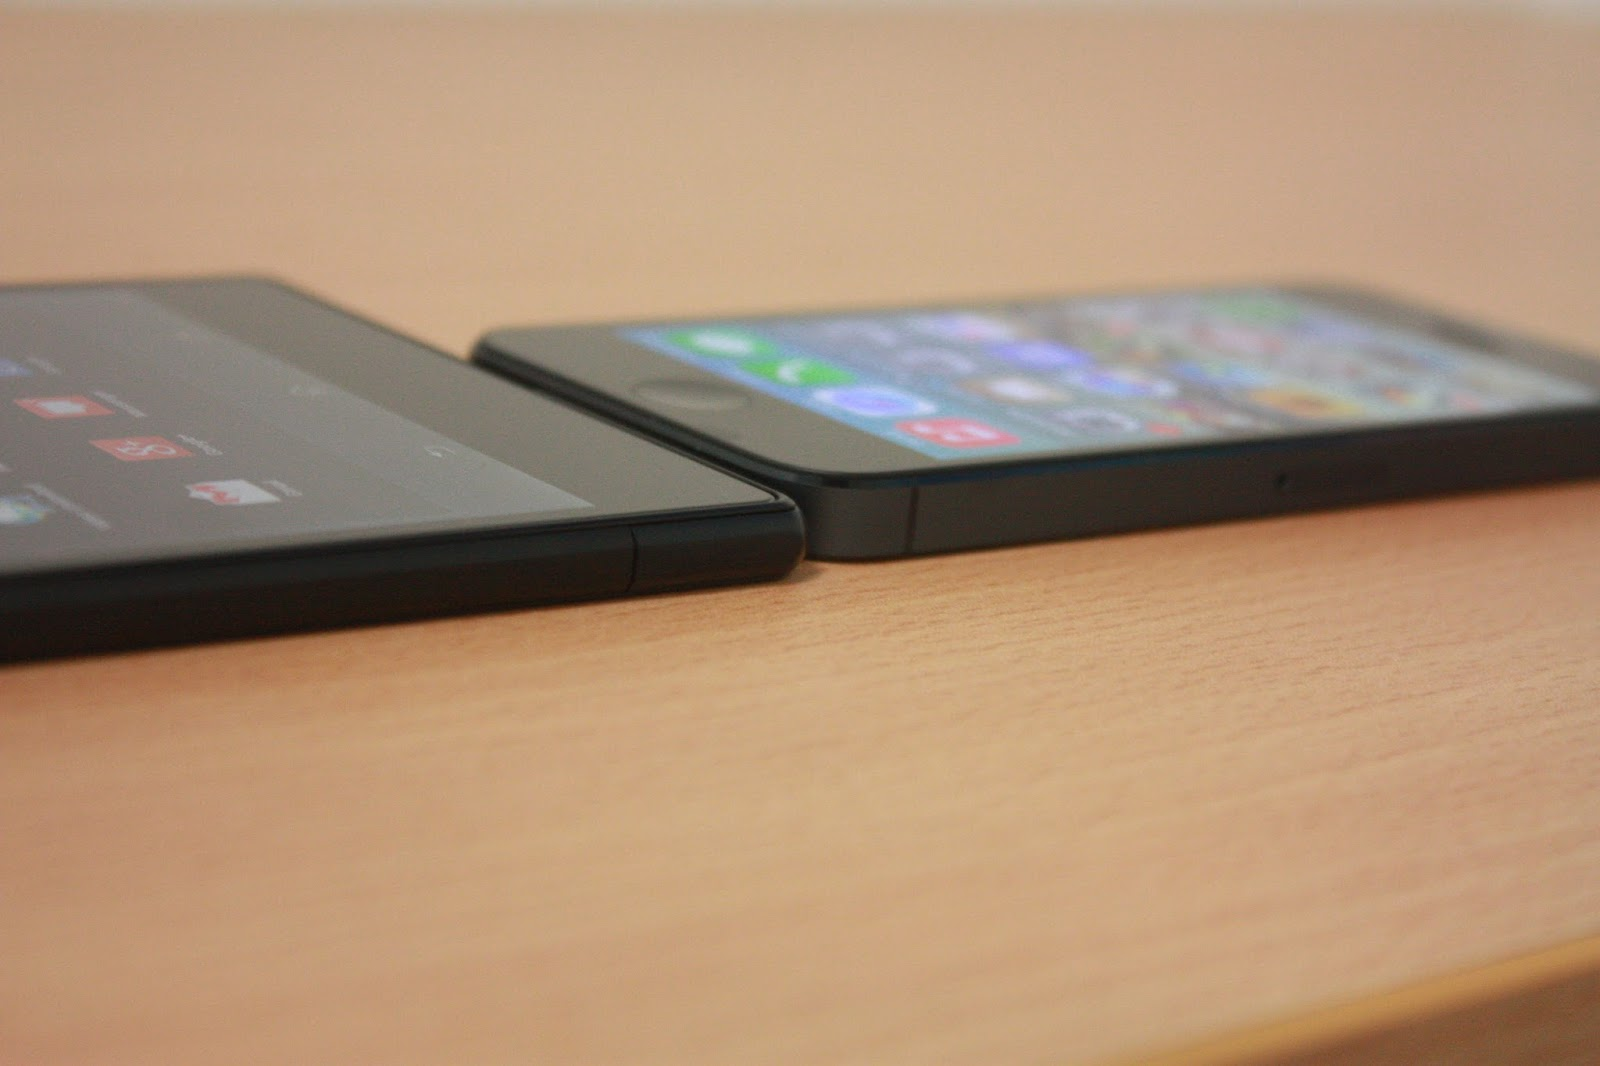 Sony Xperia Z Ultra Review - Part 2 : What makes it so ...